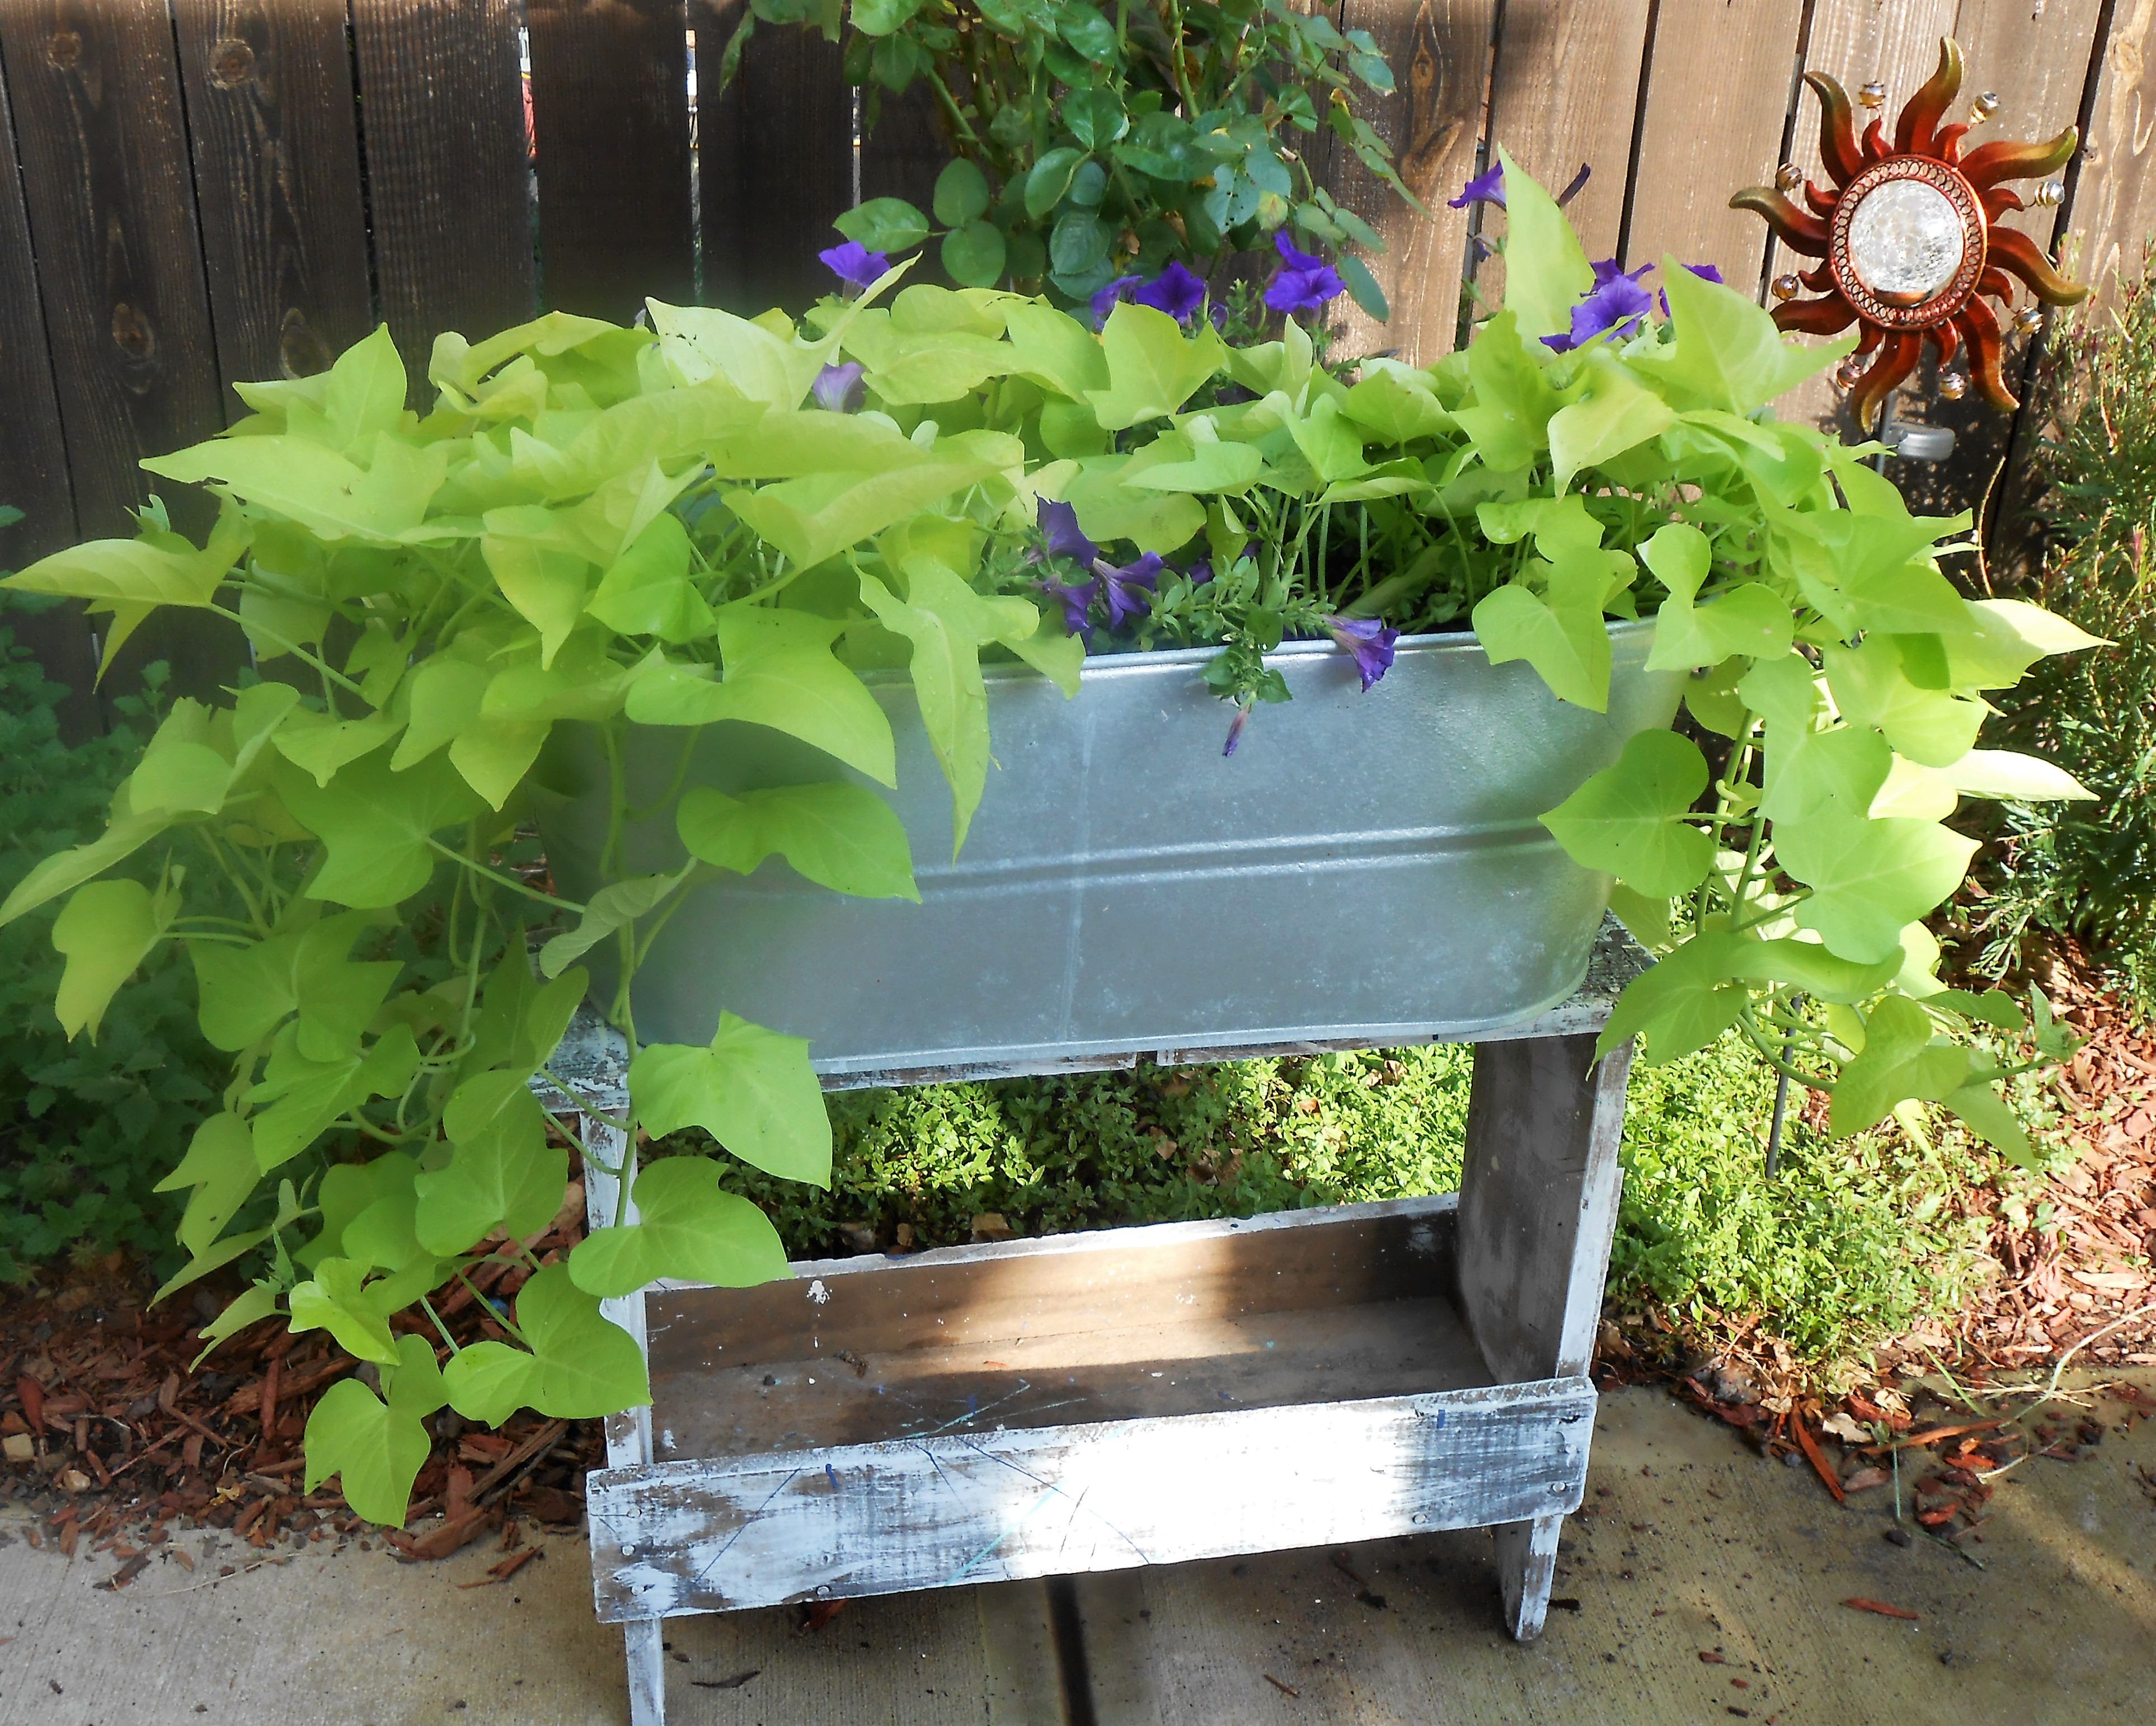 Galvanized Tub for Flowers